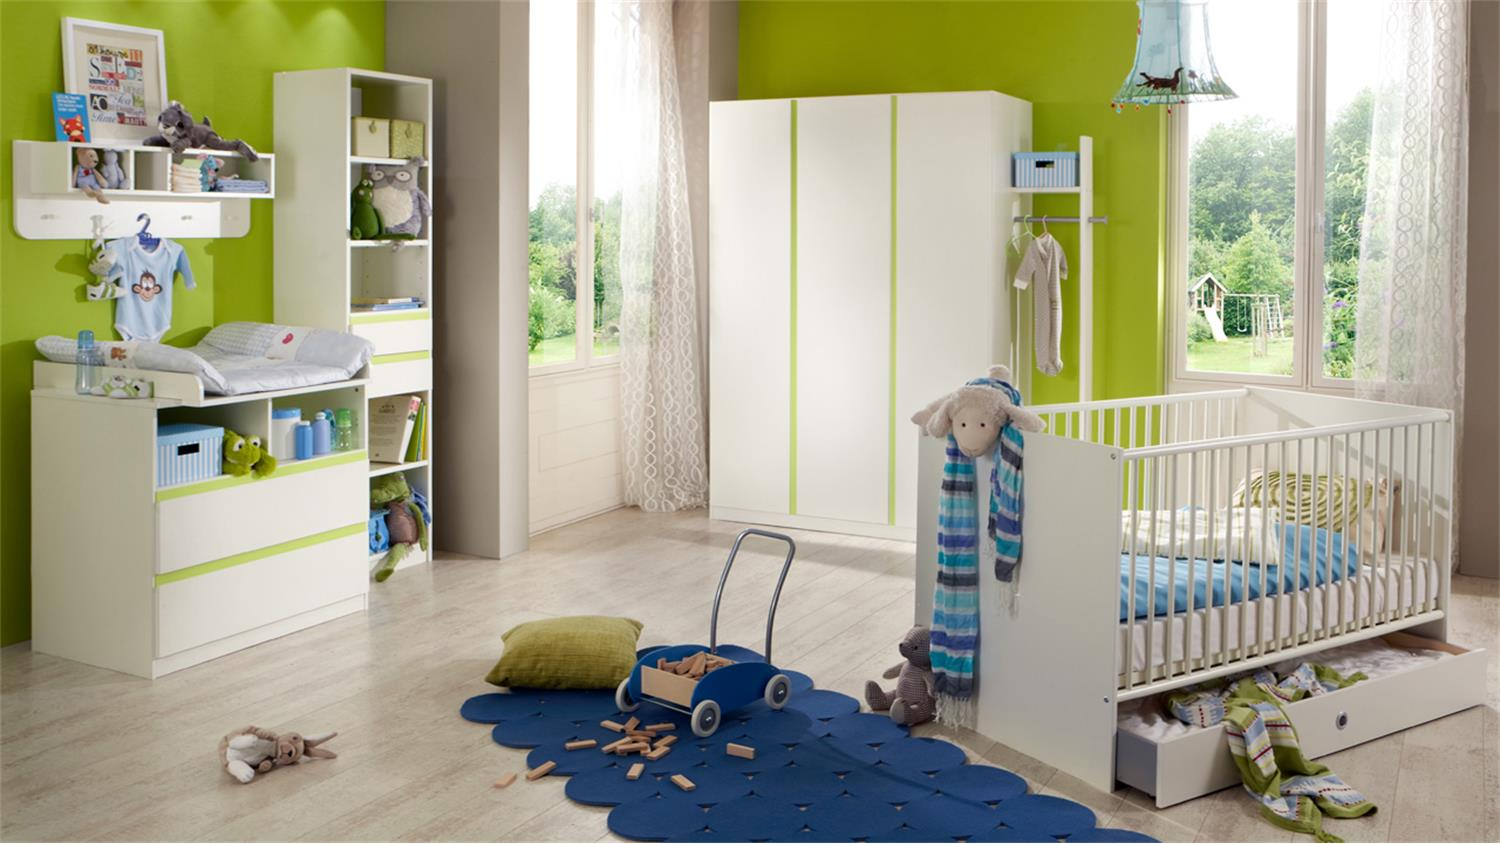 regal bibi standregal kinderzimmer babyzimmer wei apfelgr n. Black Bedroom Furniture Sets. Home Design Ideas